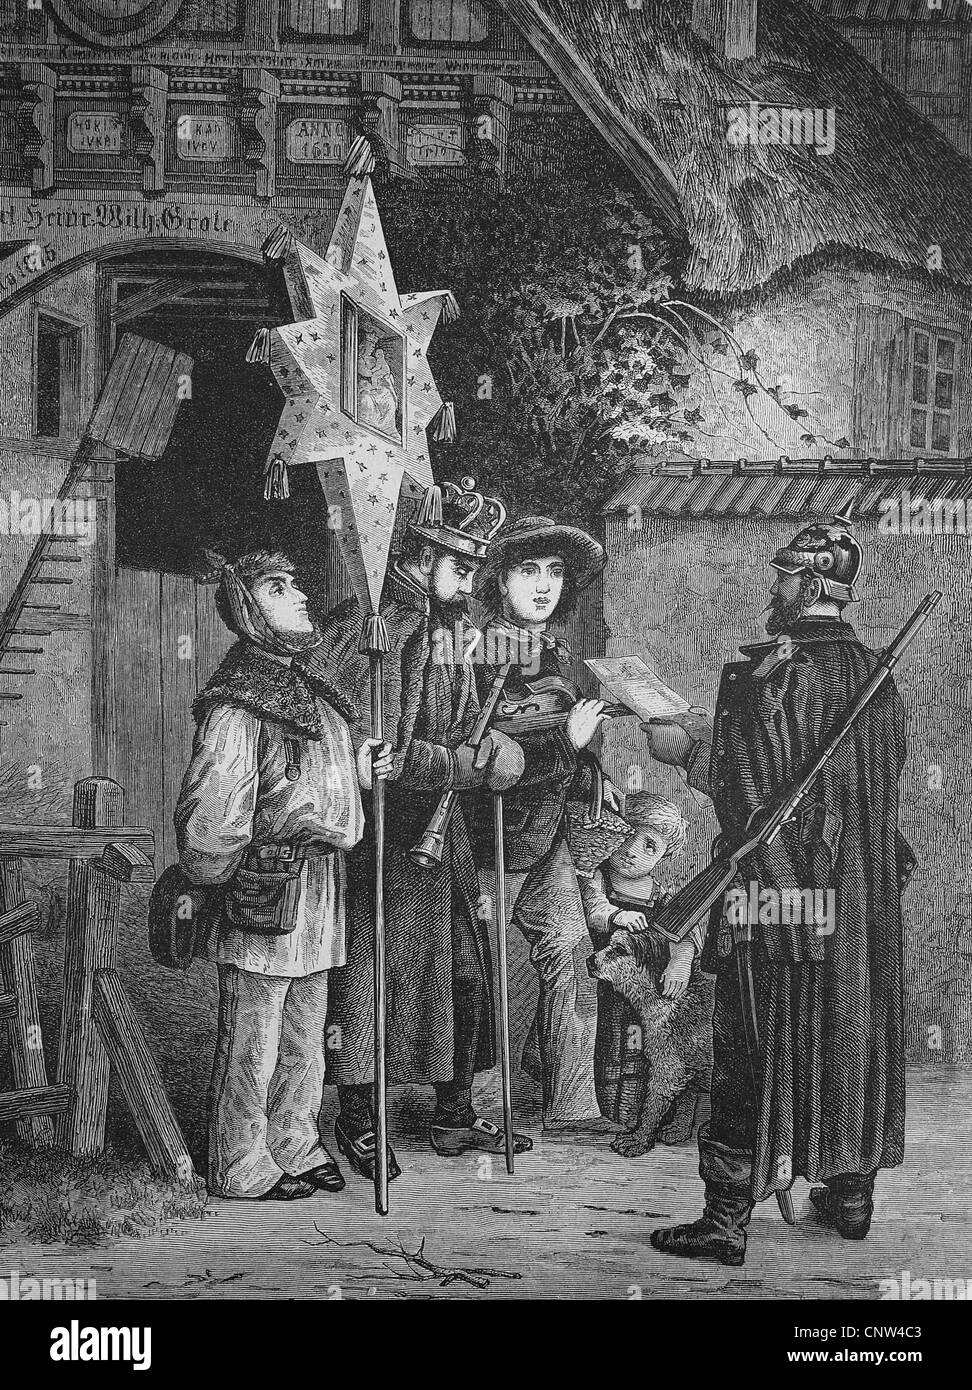 Policeman checking the papers of the three wise men, historical wood engraving, 1886 - Stock Image